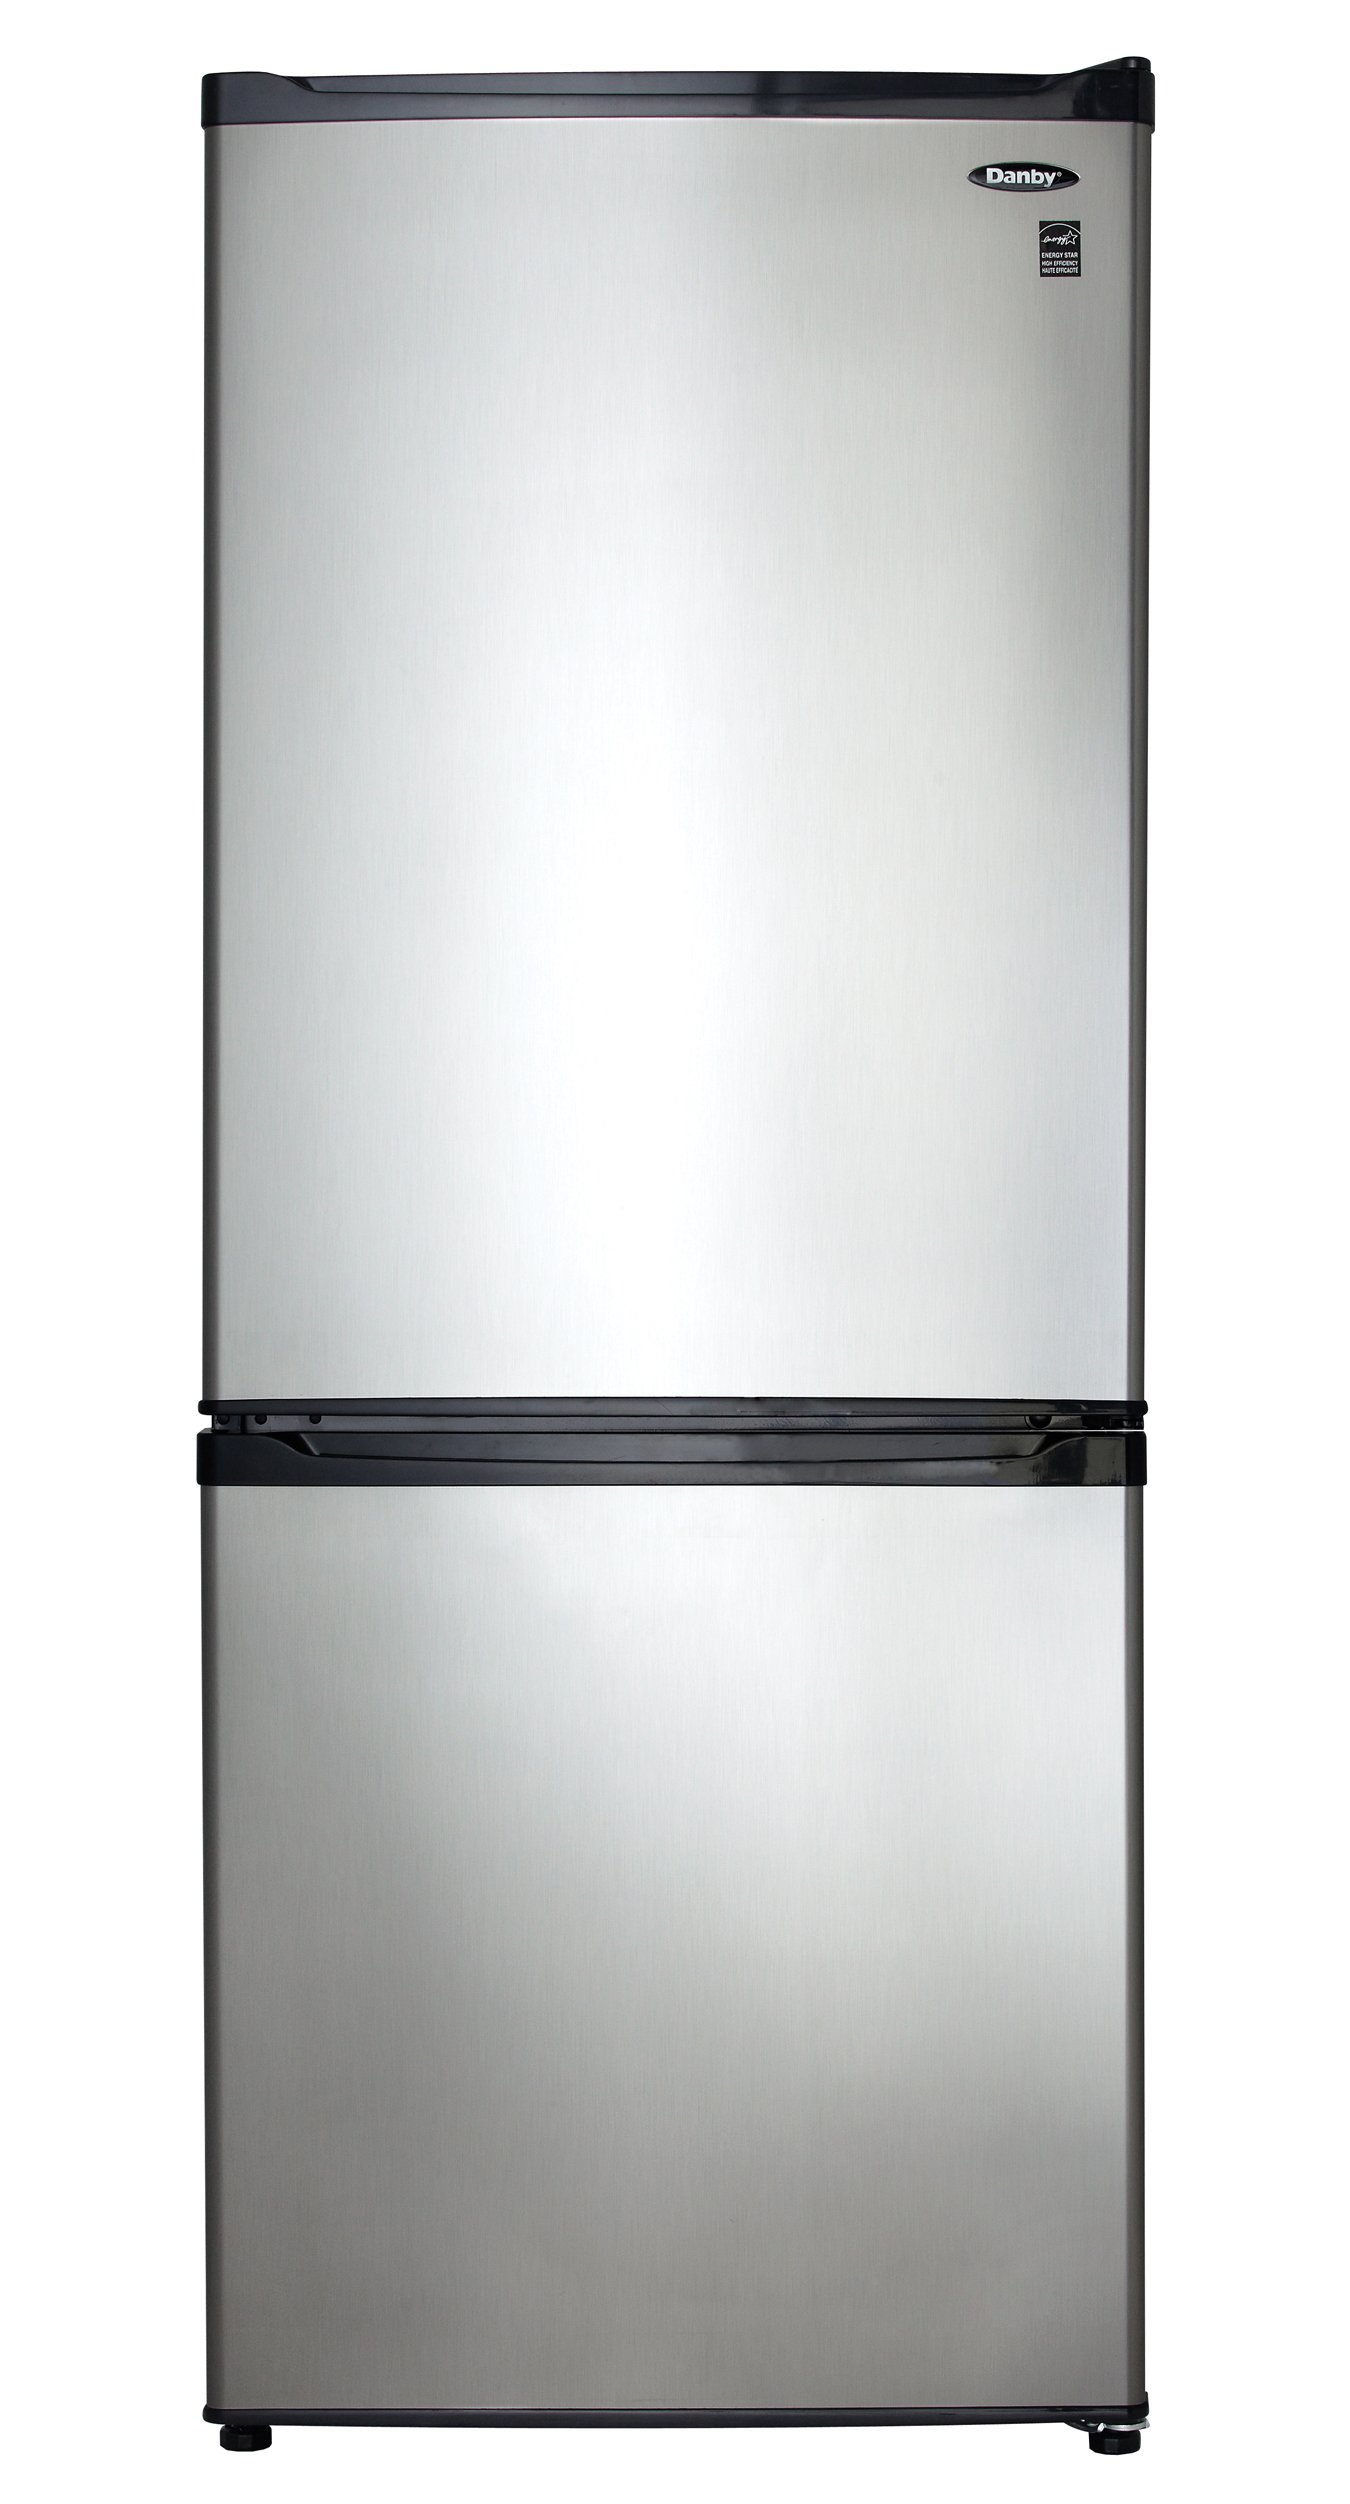 9.2 Cu. Ft. Bottom Mount Freezer- Black with Stainless Steel by Danby